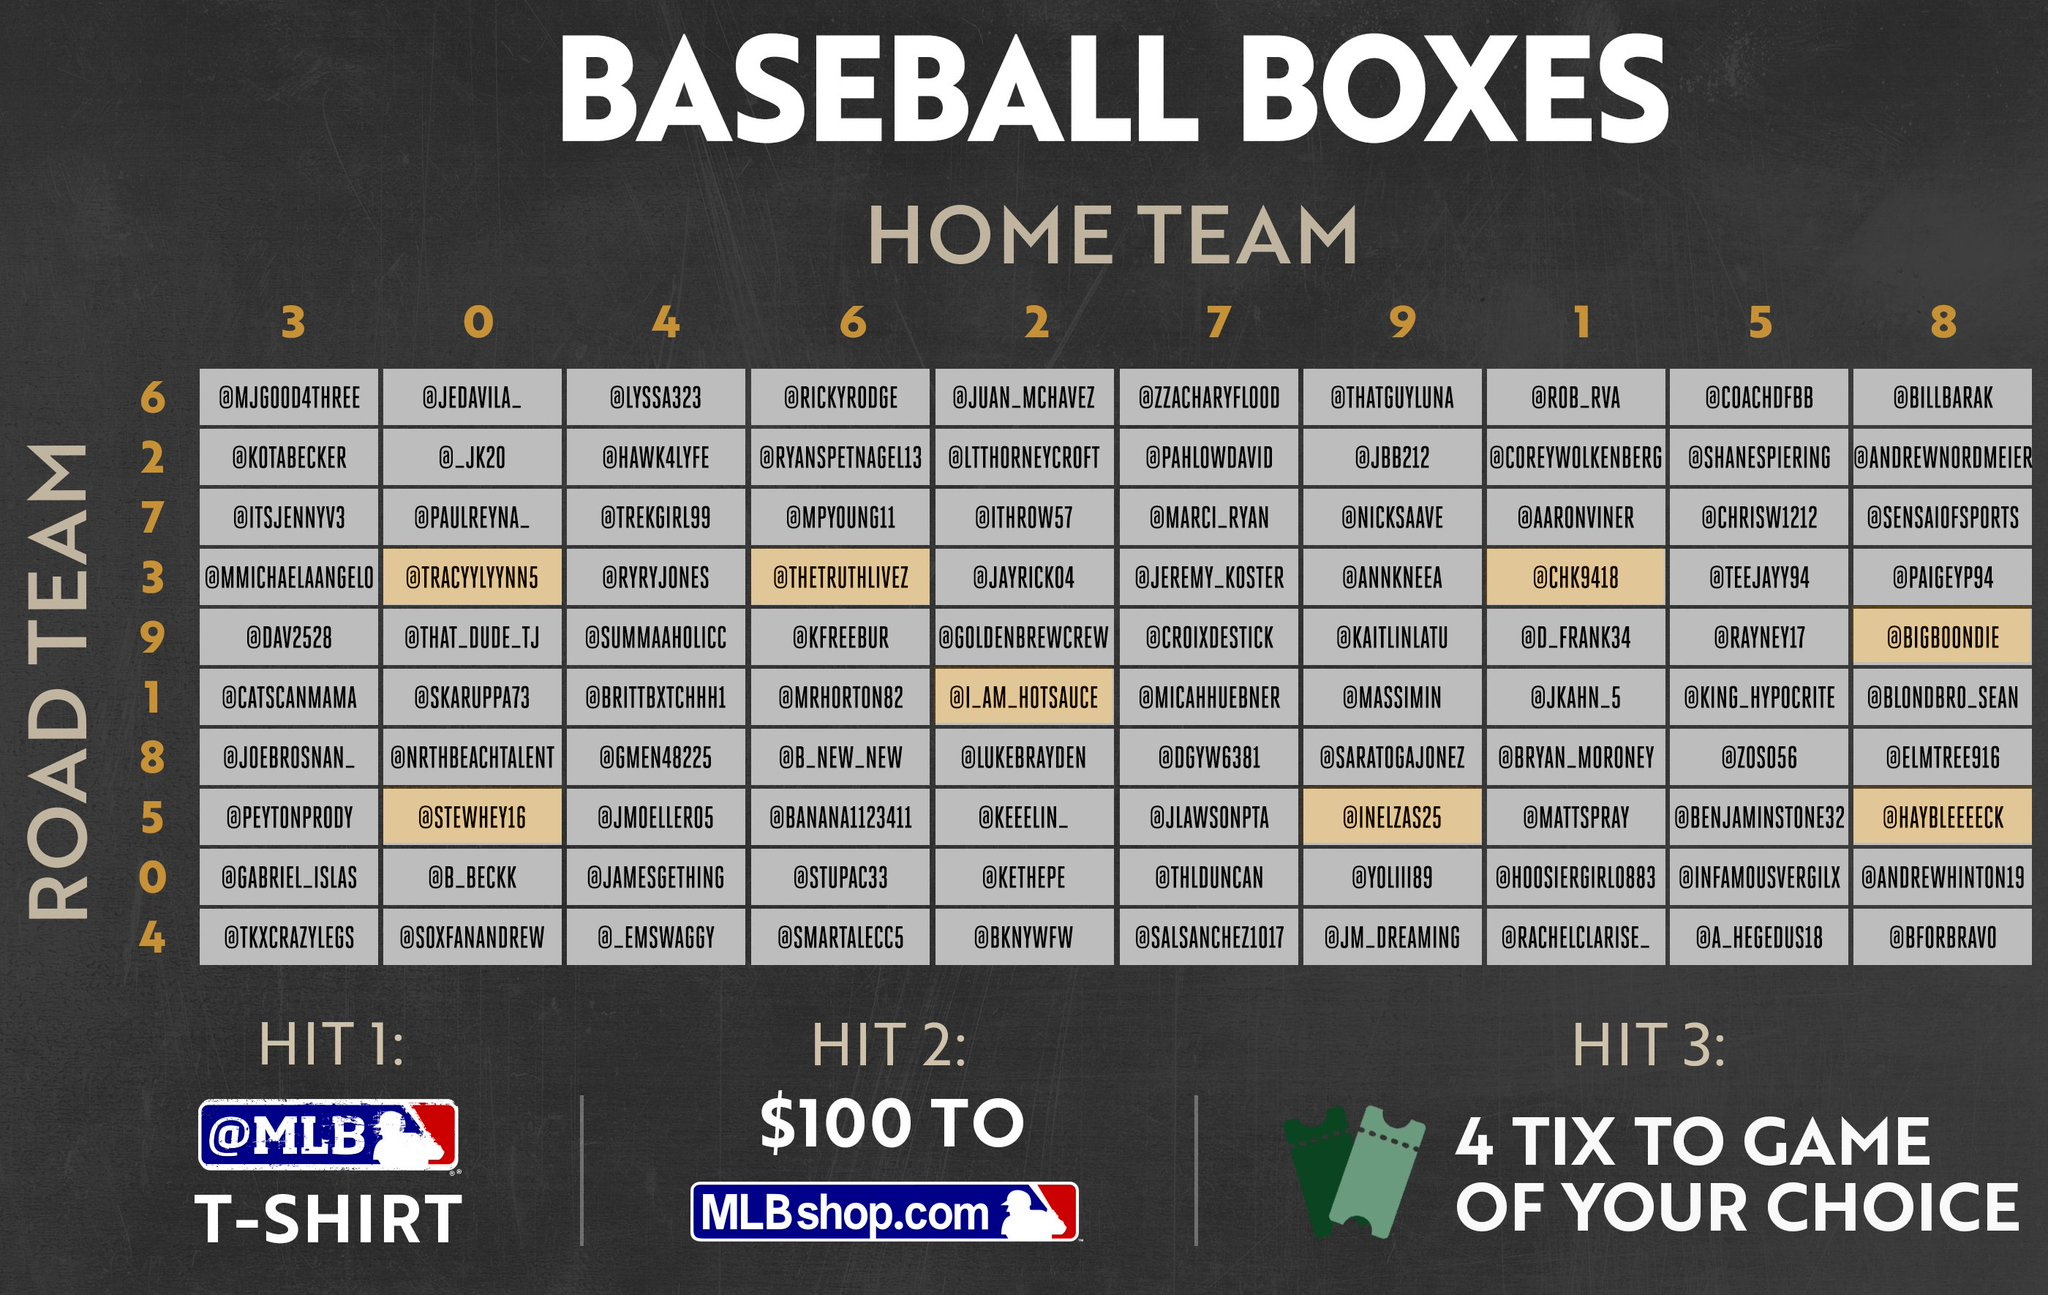 Did you win?! #BaseballBoxes https://t.co/YvmX2OIv6F